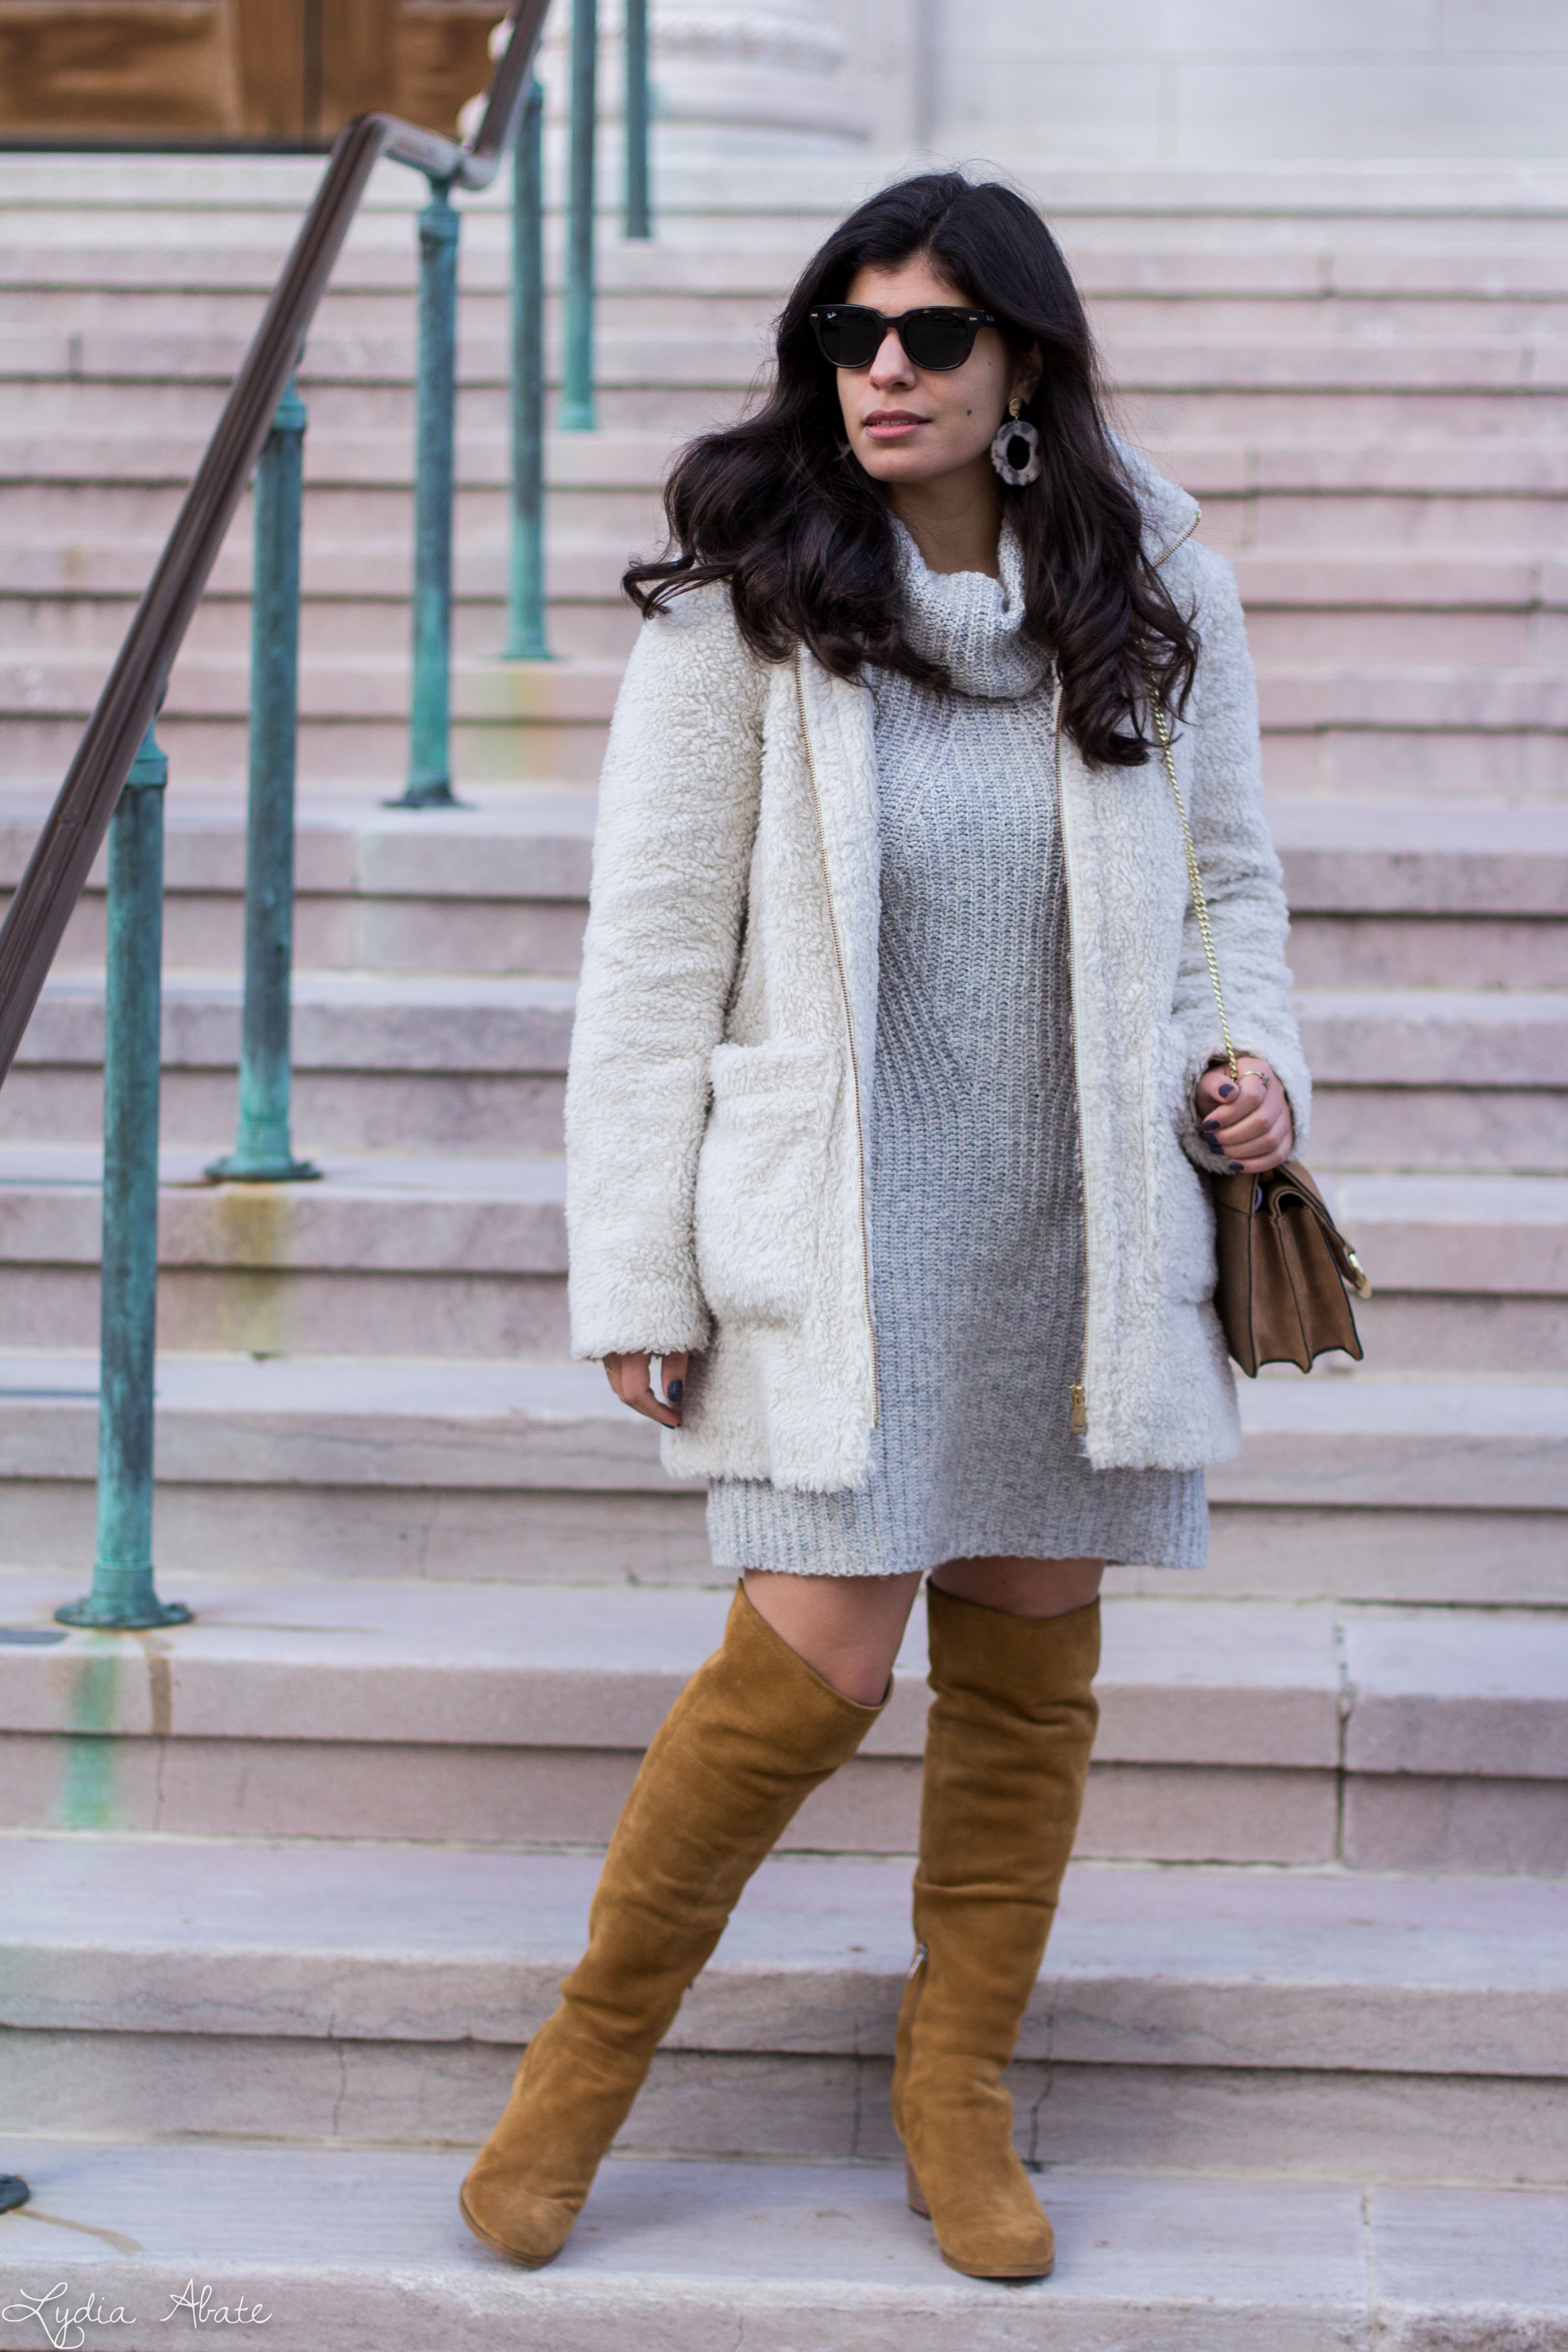 grey sweater dress, white teddy coat, over the knee boots-7.jpg